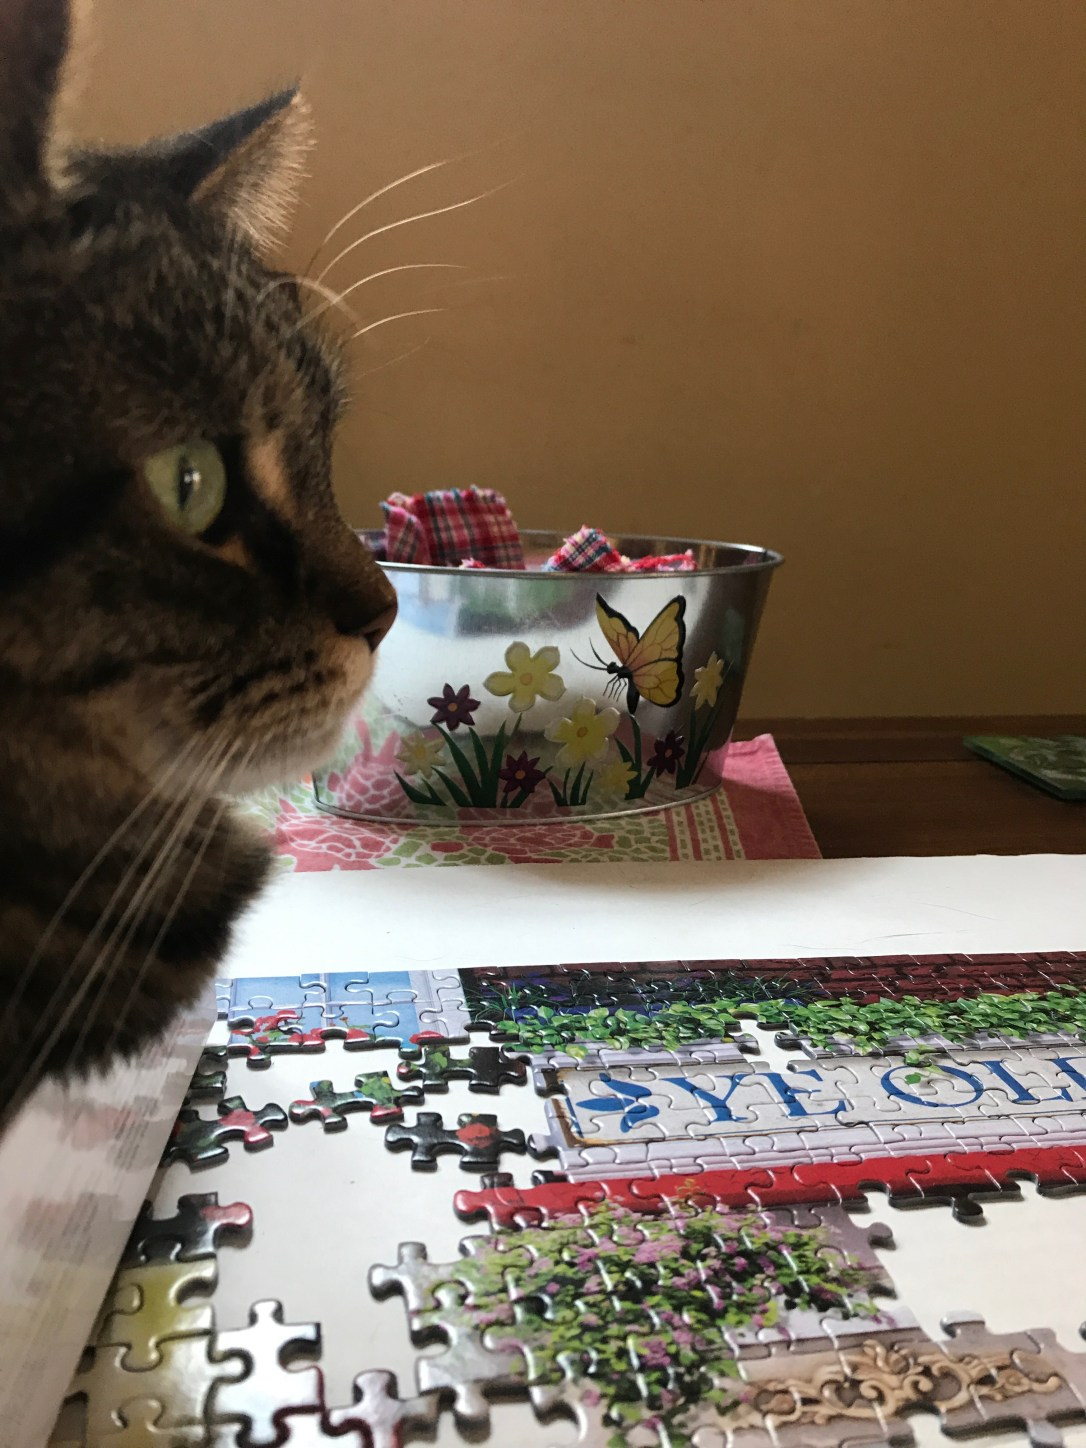 cat in a puzzle box looking at a partially finished puzzle